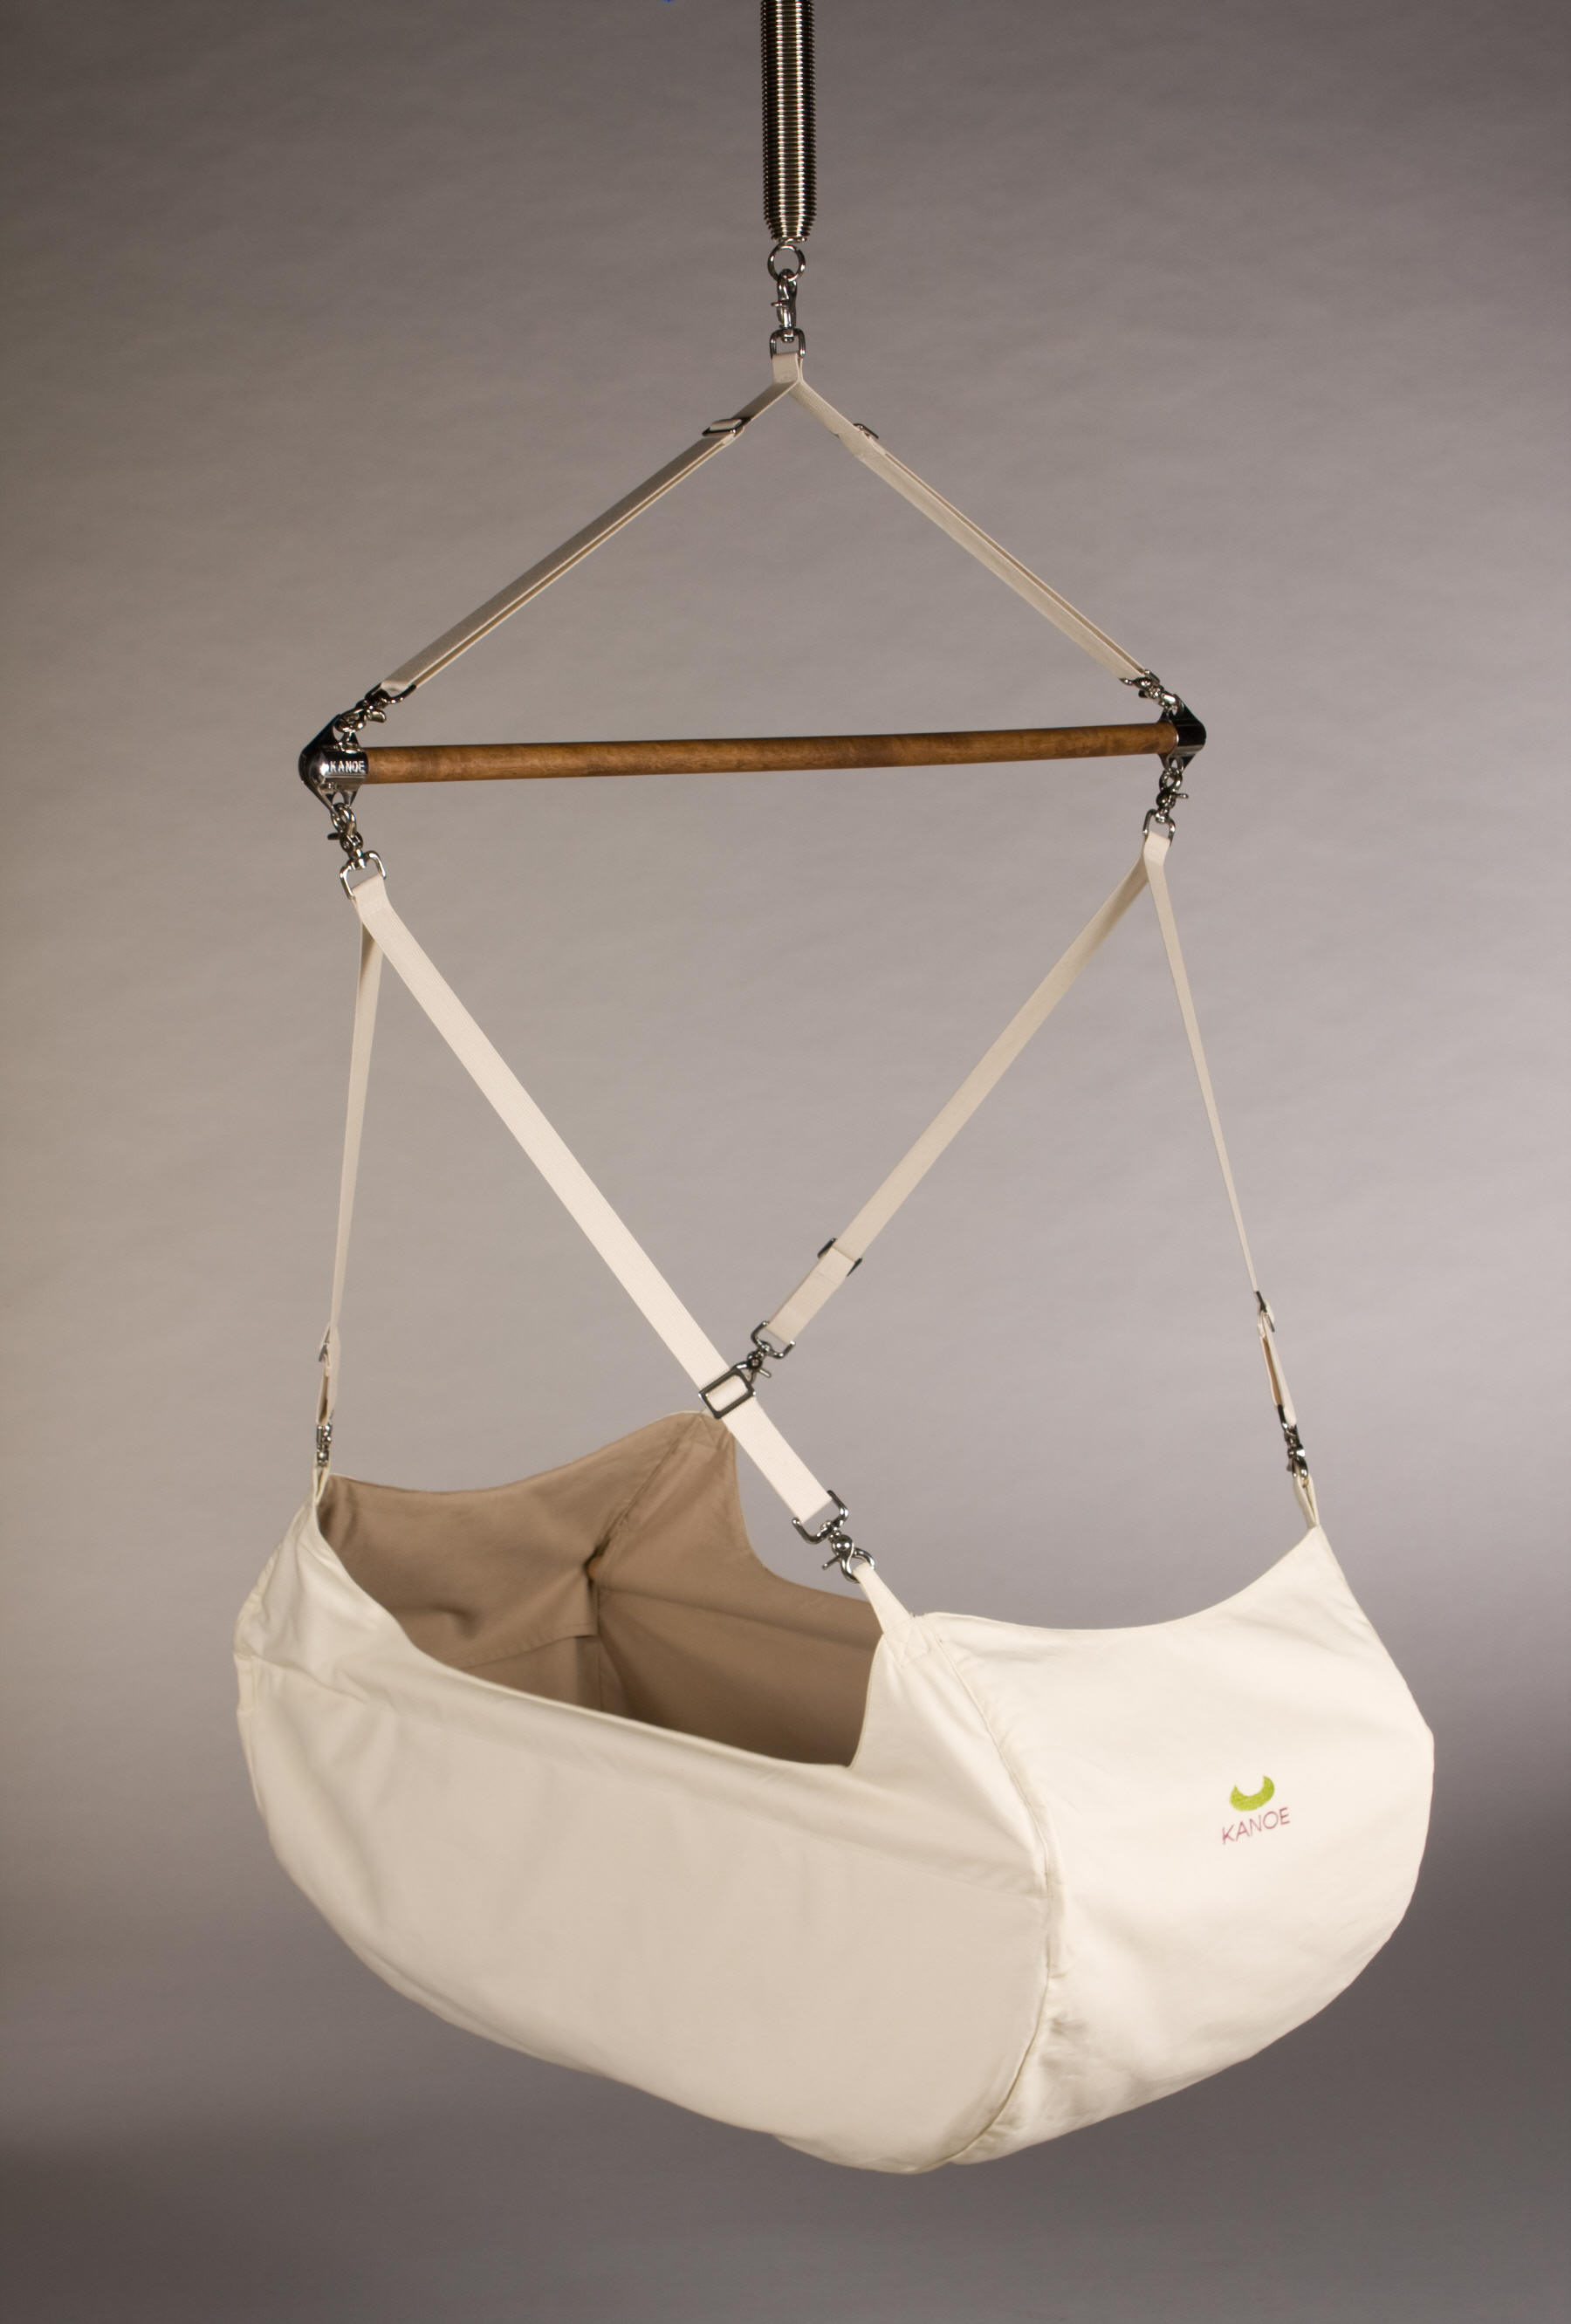 Medium image of kanoe organic baby hammock